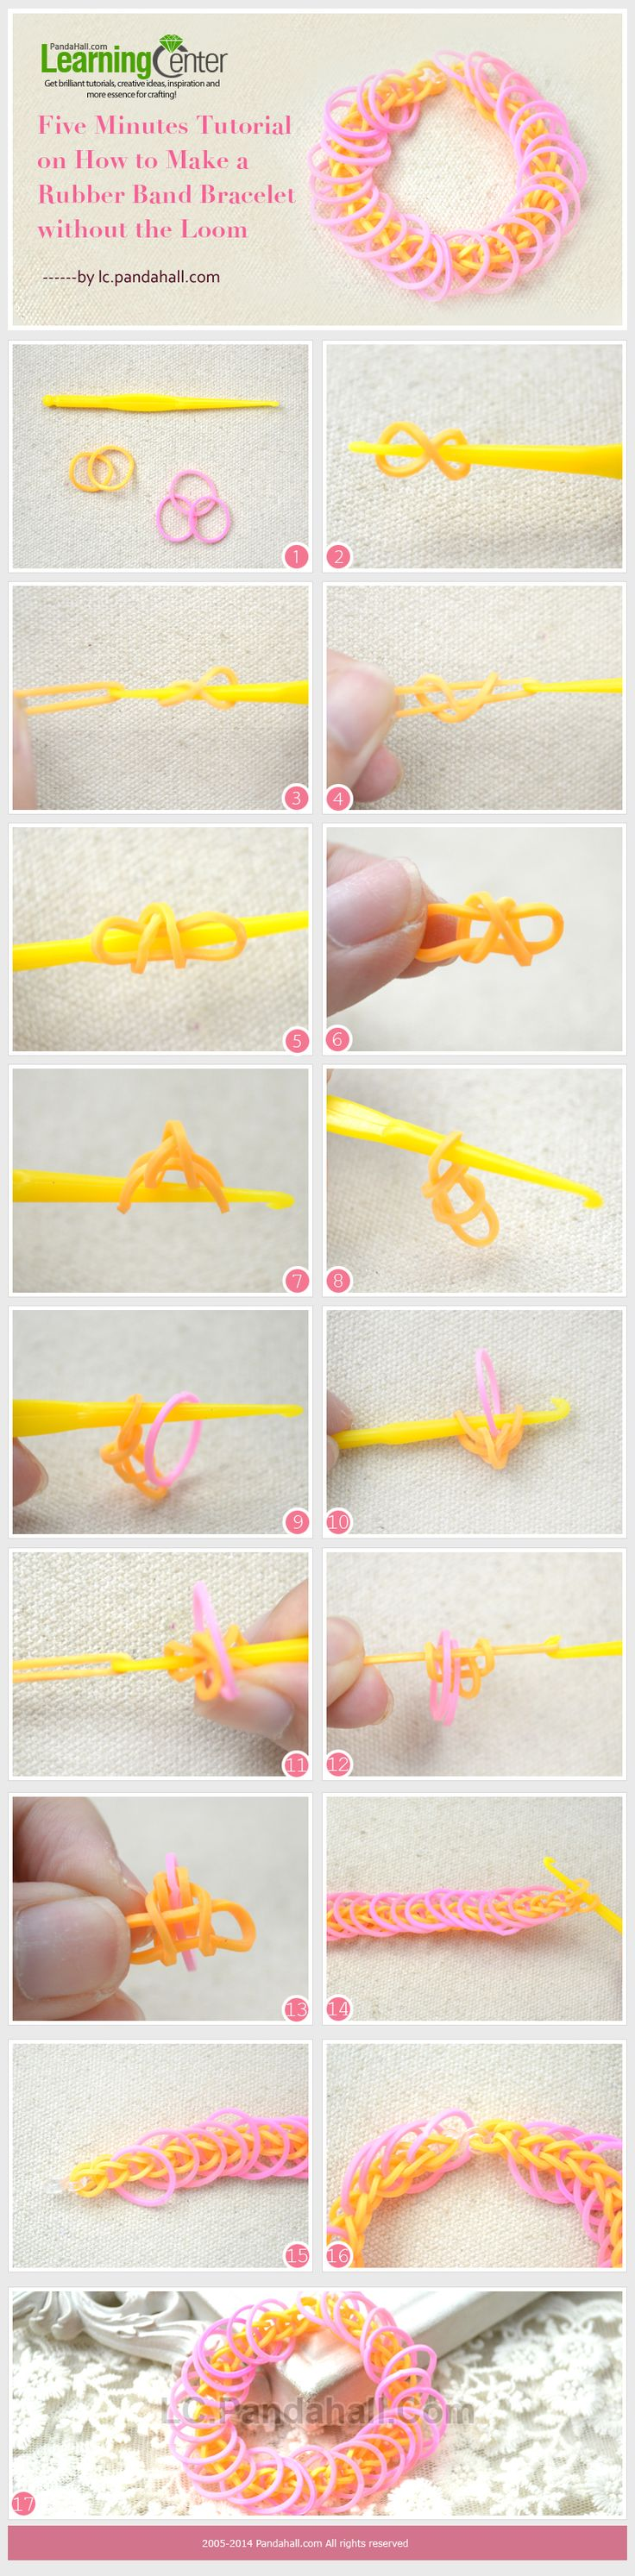 Five Minutes Tutorial on How to Make a Rubber Band Bracelet without the Loom